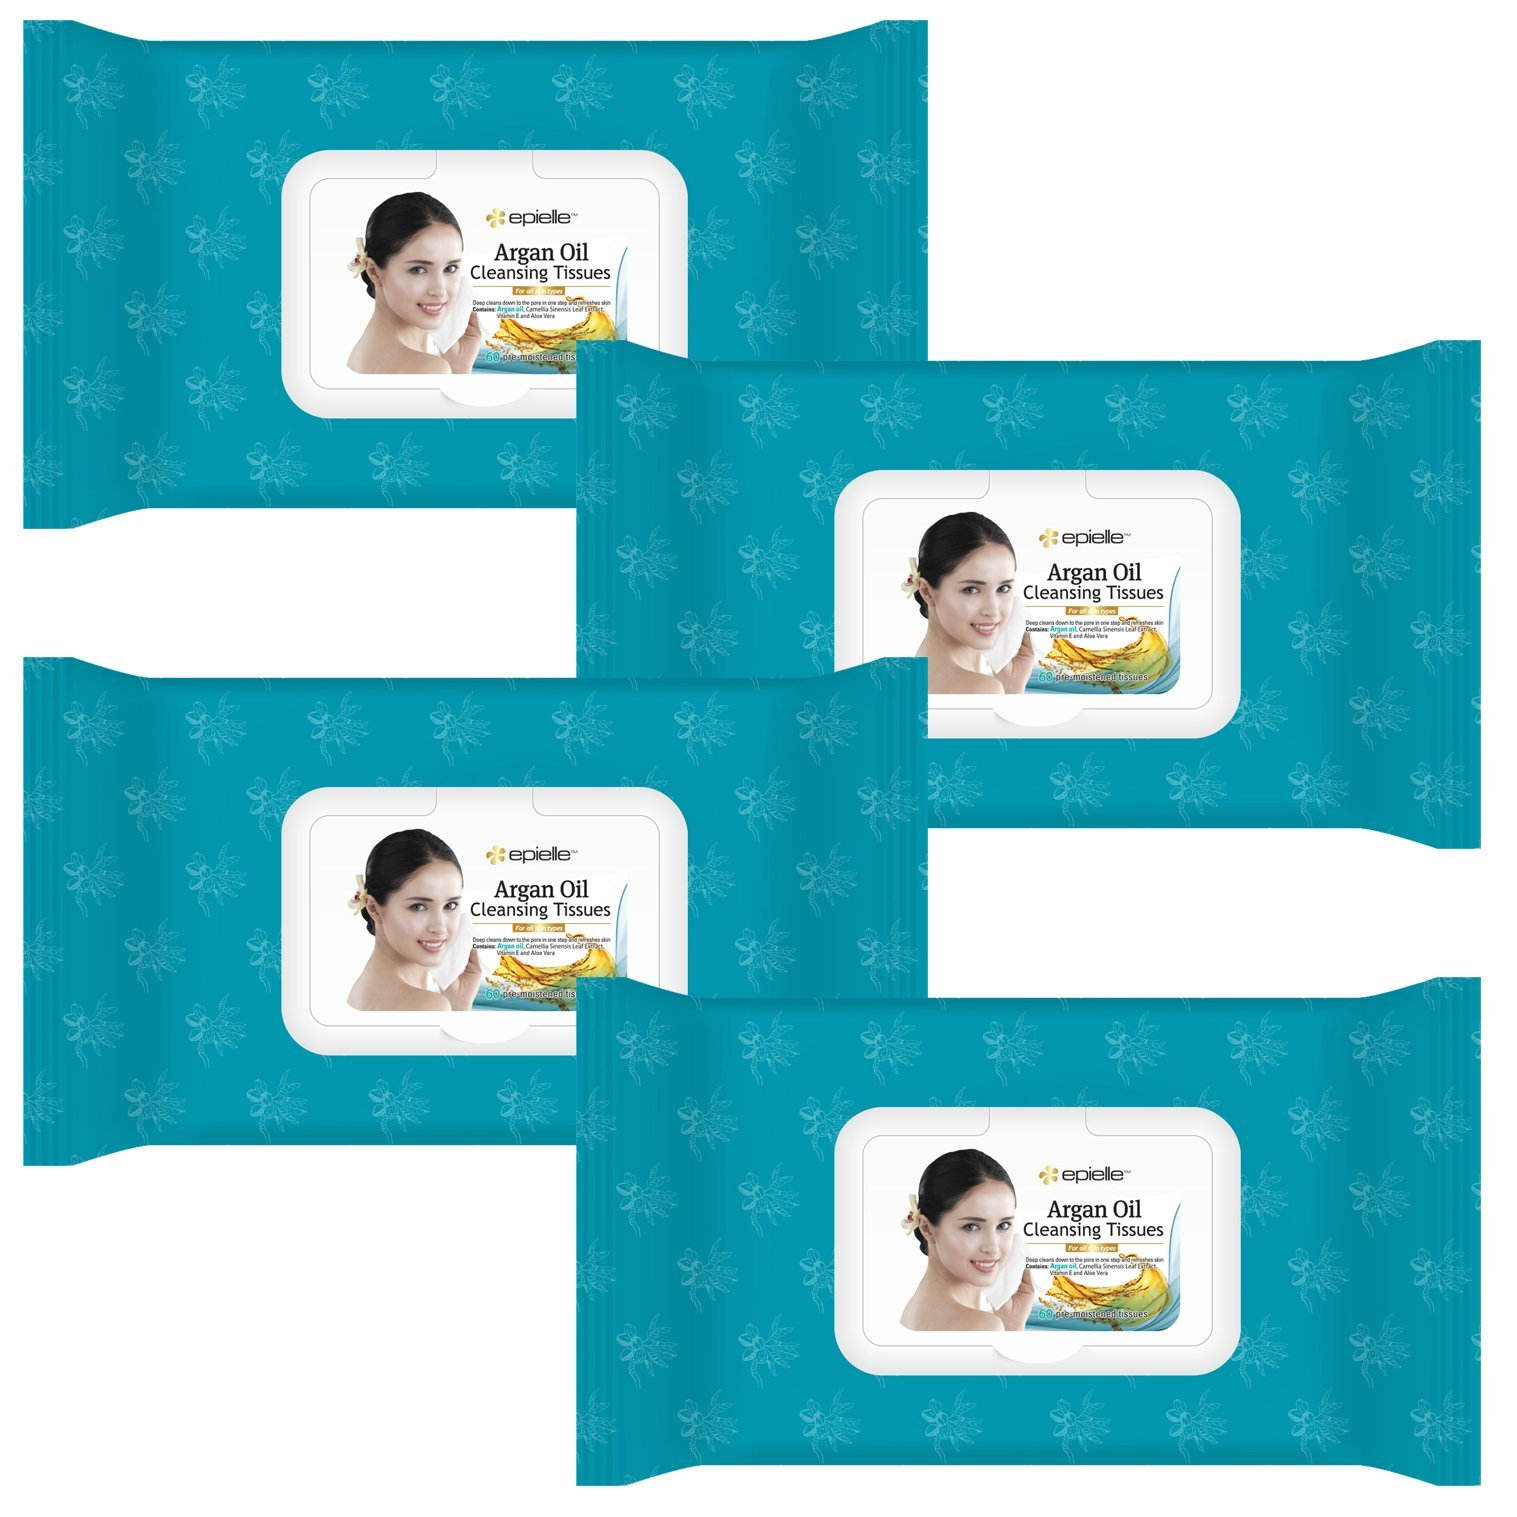 Kareway Epielle Argan Oil Facial Makeup Remover Cleansing Tissues Wipes Towelettes - 60ct (Sheets) per pack, Total 4 packs by Epielle